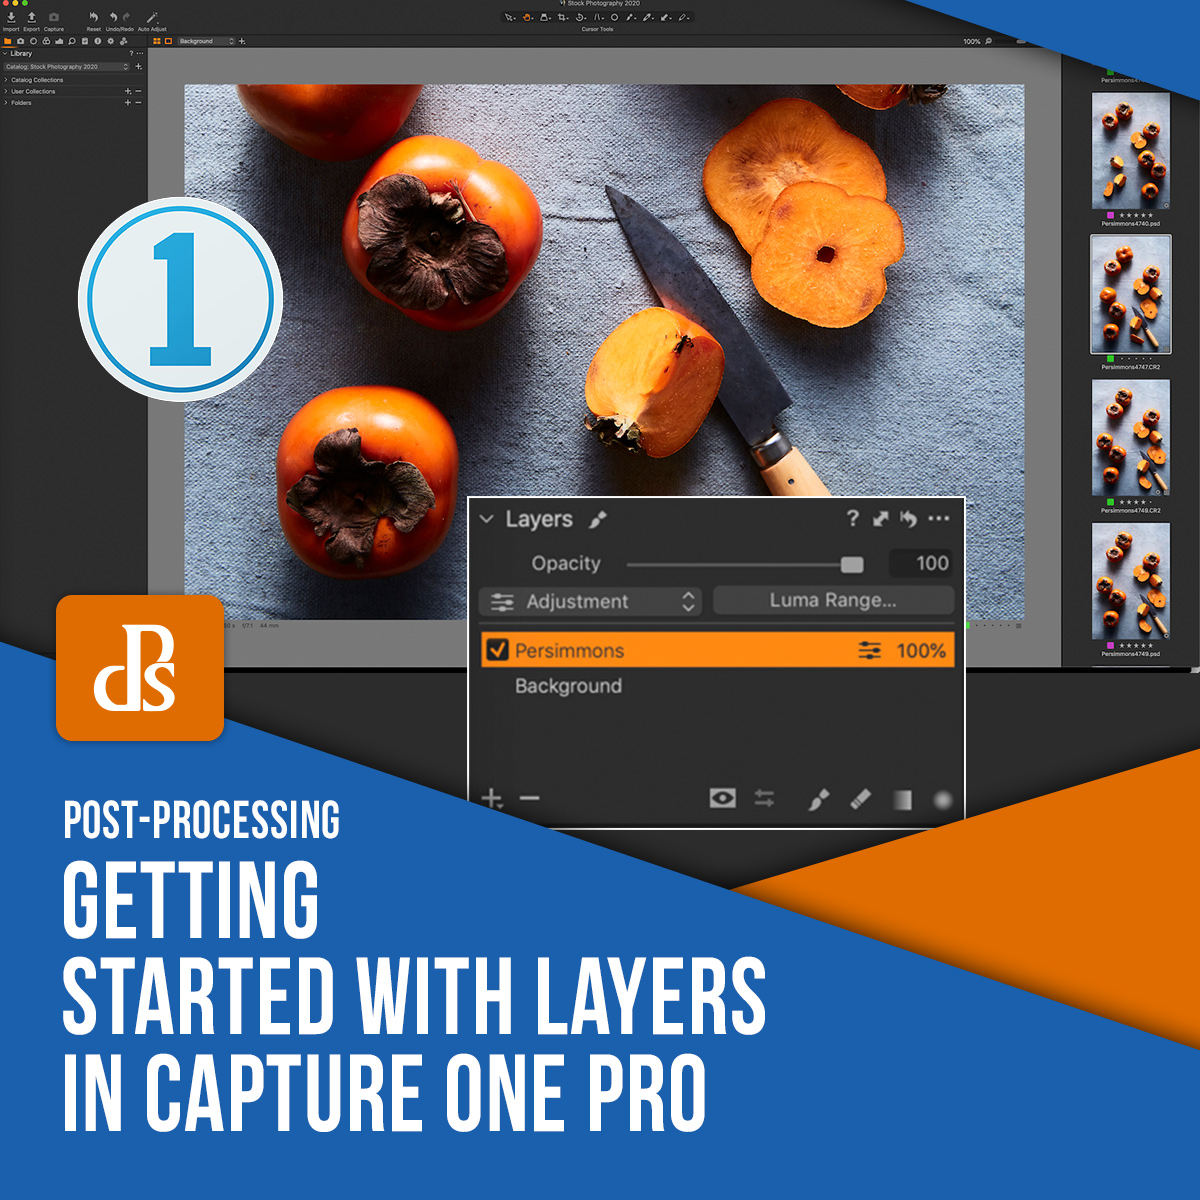 https://i0.wp.com/digital-photography-school.com/wp-content/uploads/2020/06/dps-tips-layers-in-capture-one.jpg?ssl=1